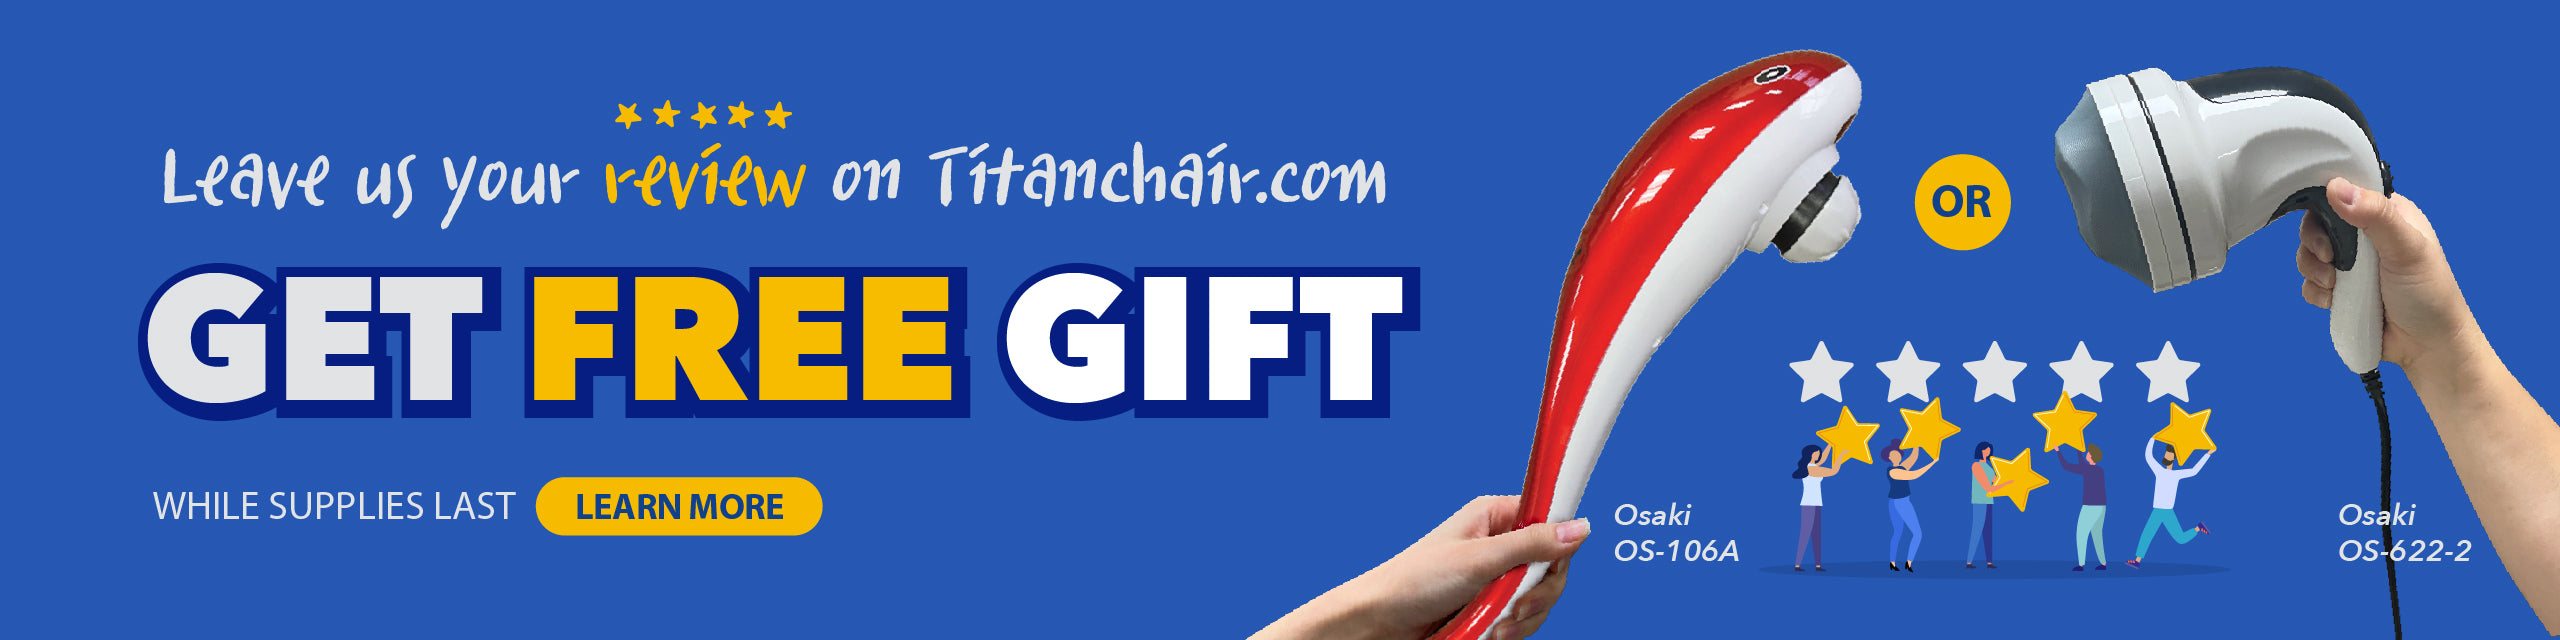 Leave us your review on Titanchair.com./ Get Free Gift Osaki Os-106A or Osaki Os-622-2 While Supplies Last. Learn More